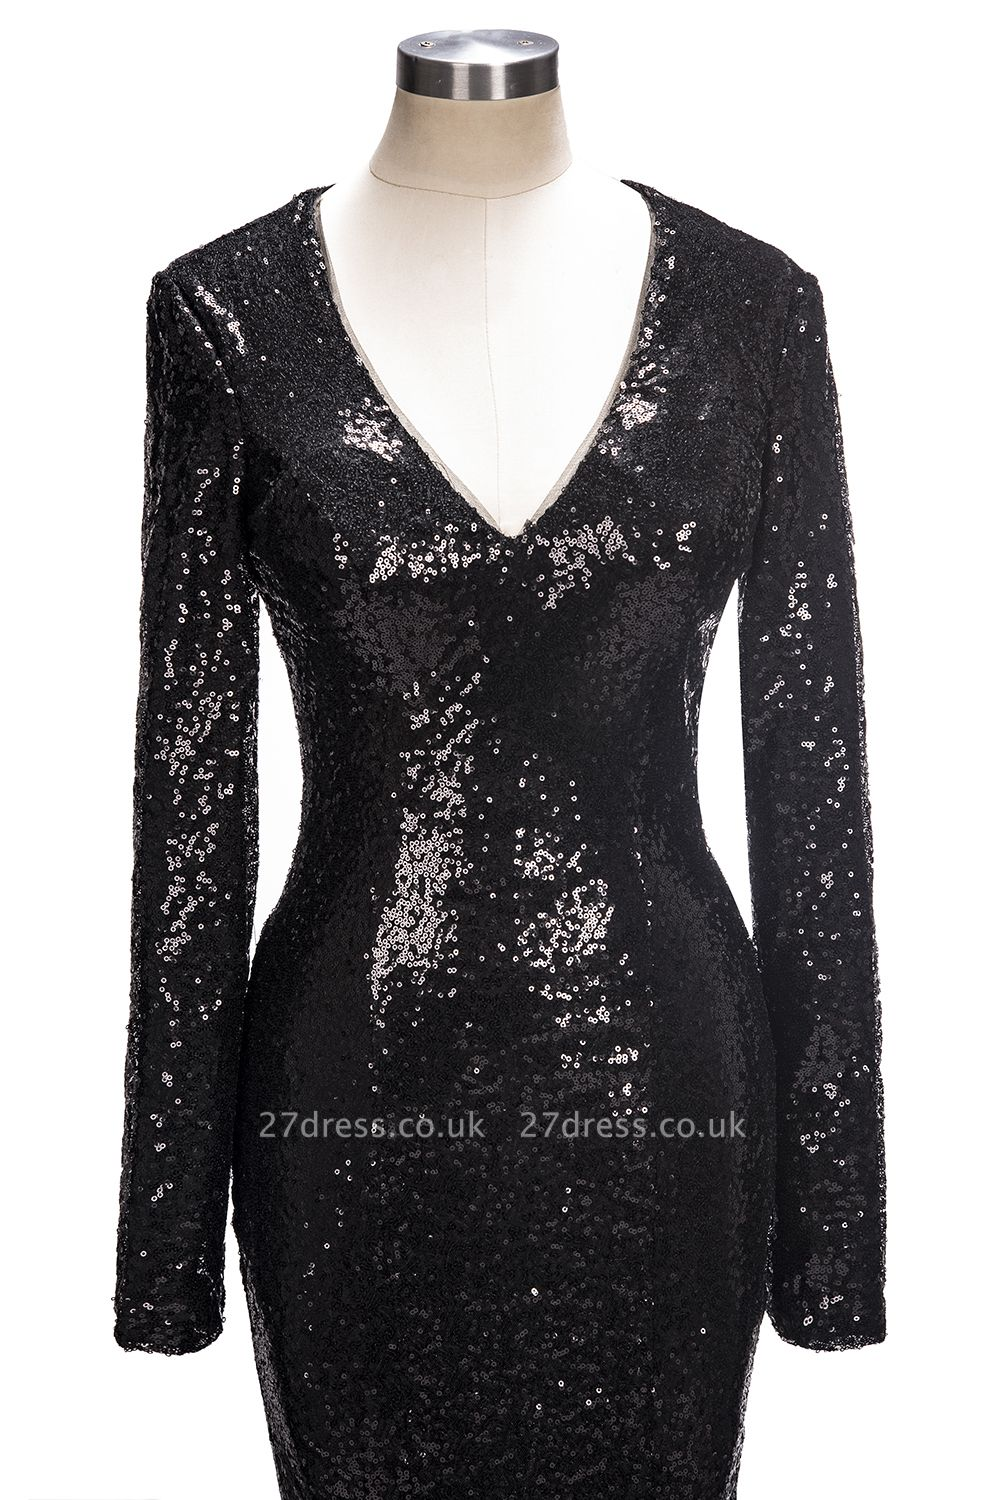 Black sequins prom Dress UK, long sleeve mermaid evening gowns